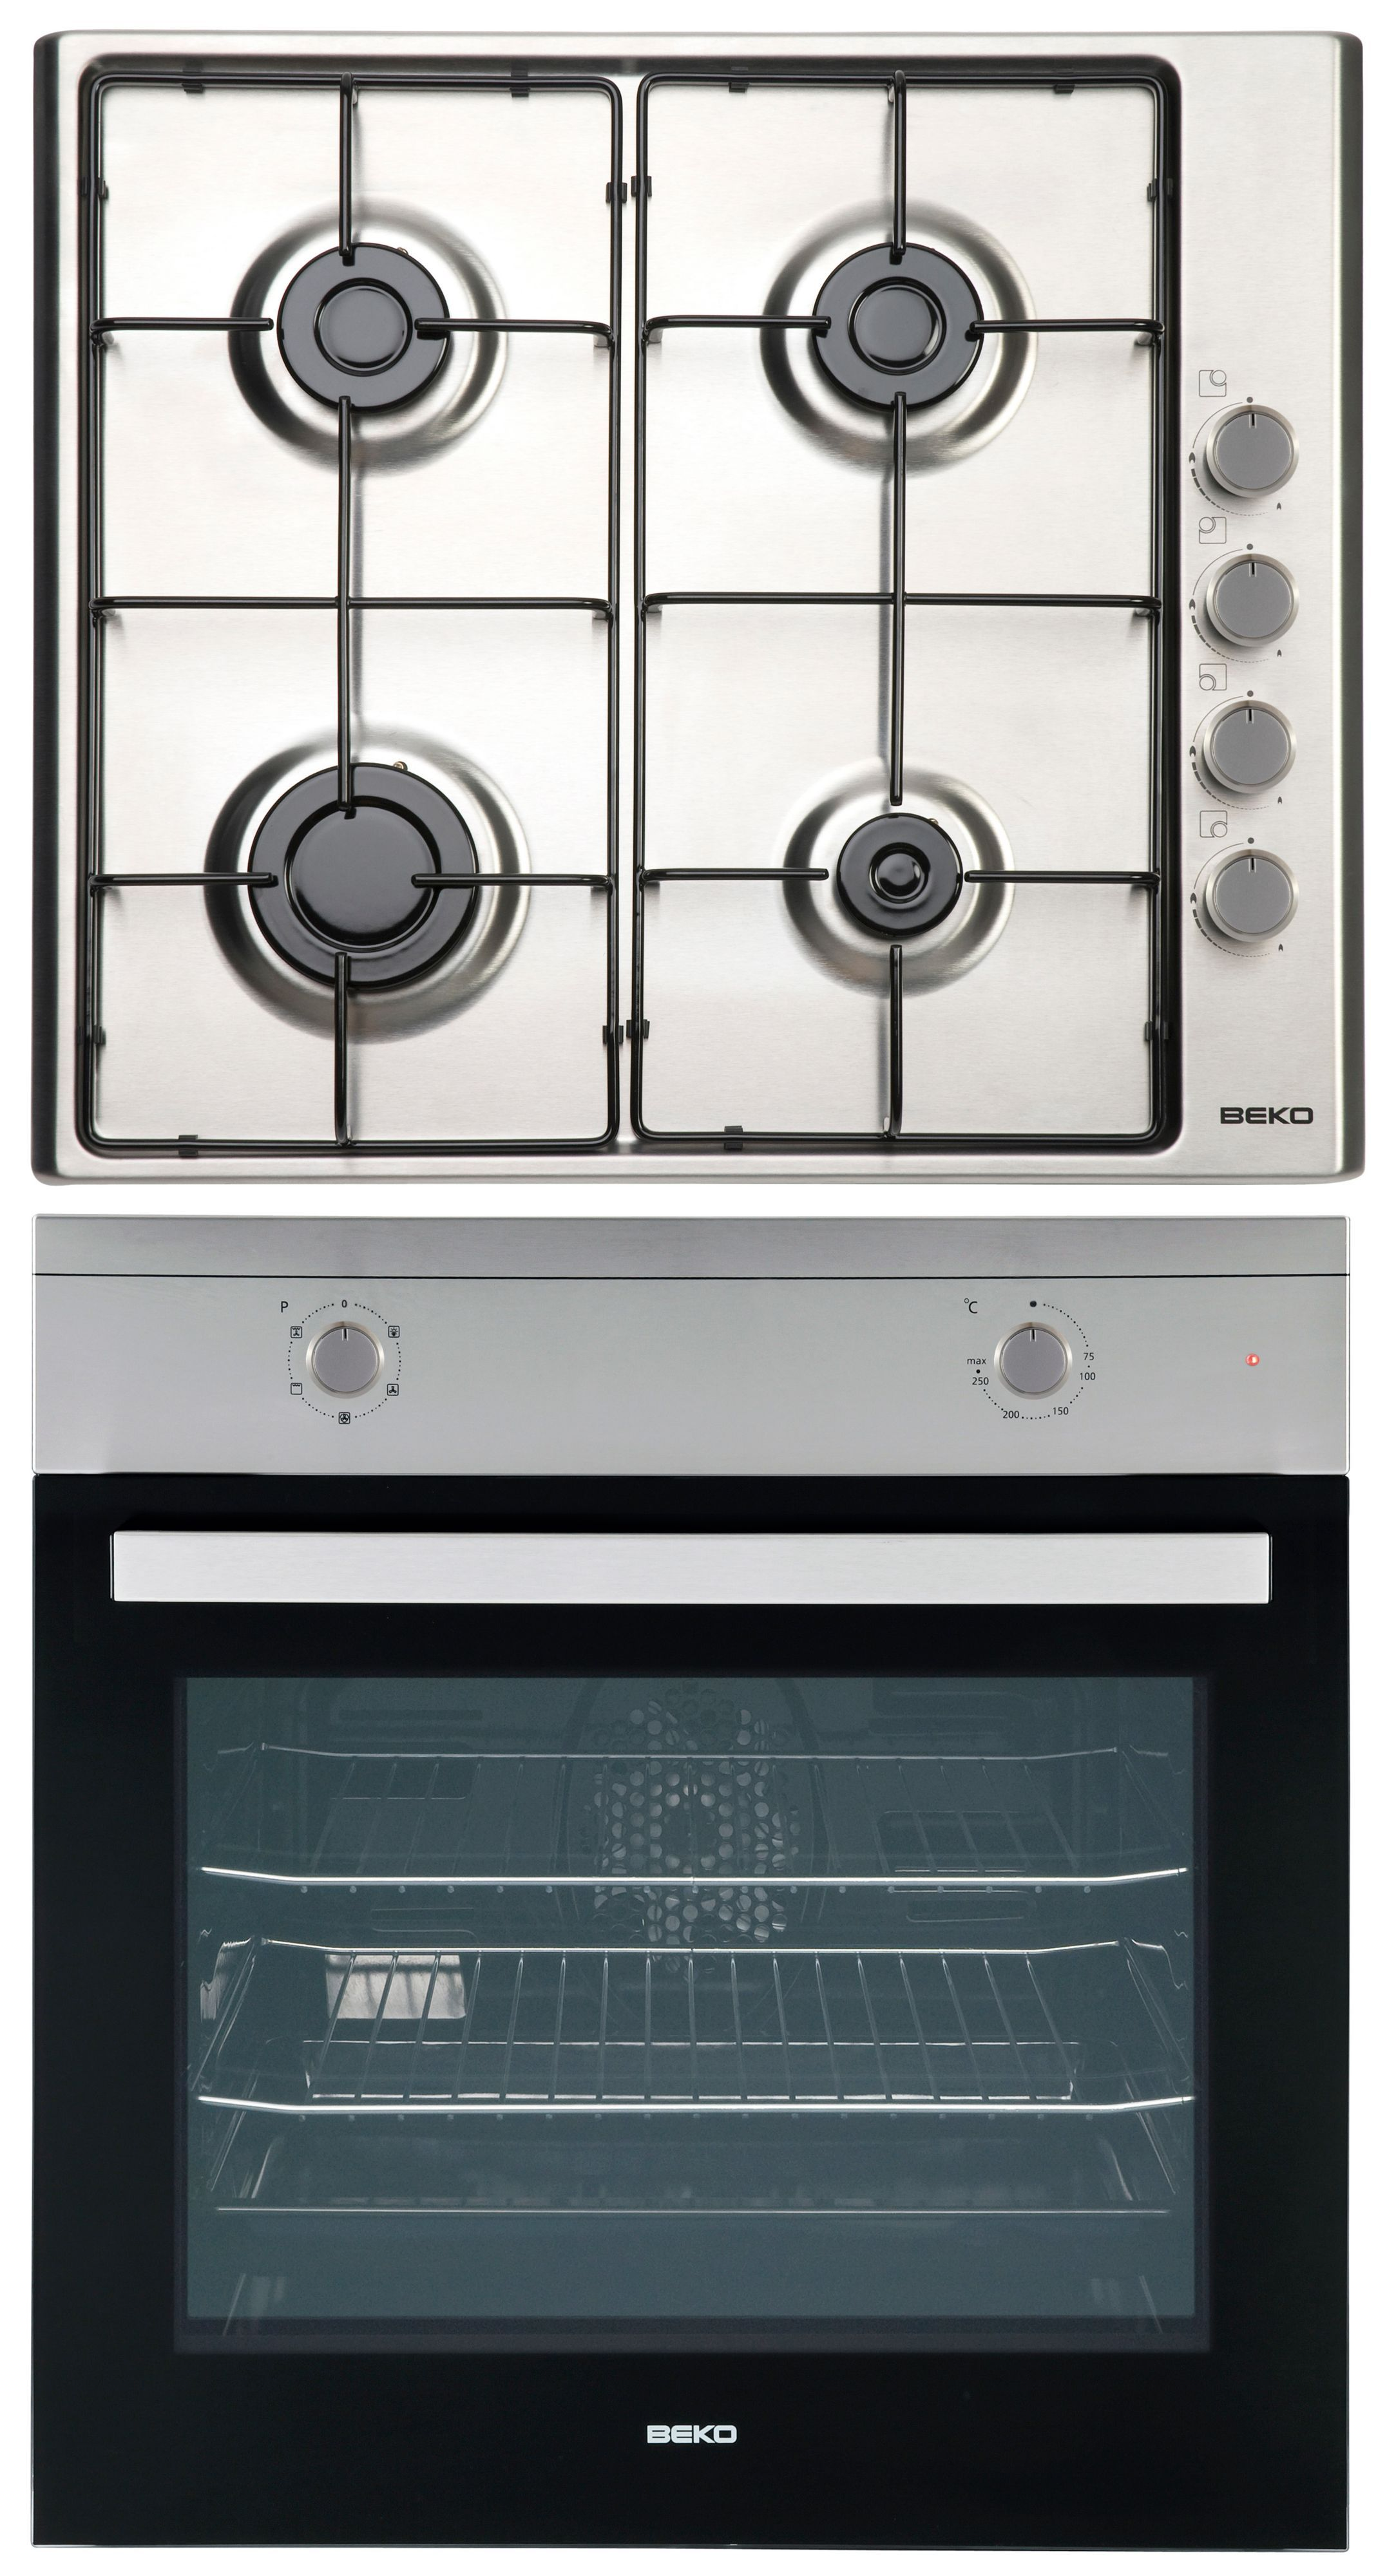 Cocina Gas Beko Beko Qsf213sx Stainless Steel Single Fan Oven Gas Hob Pack